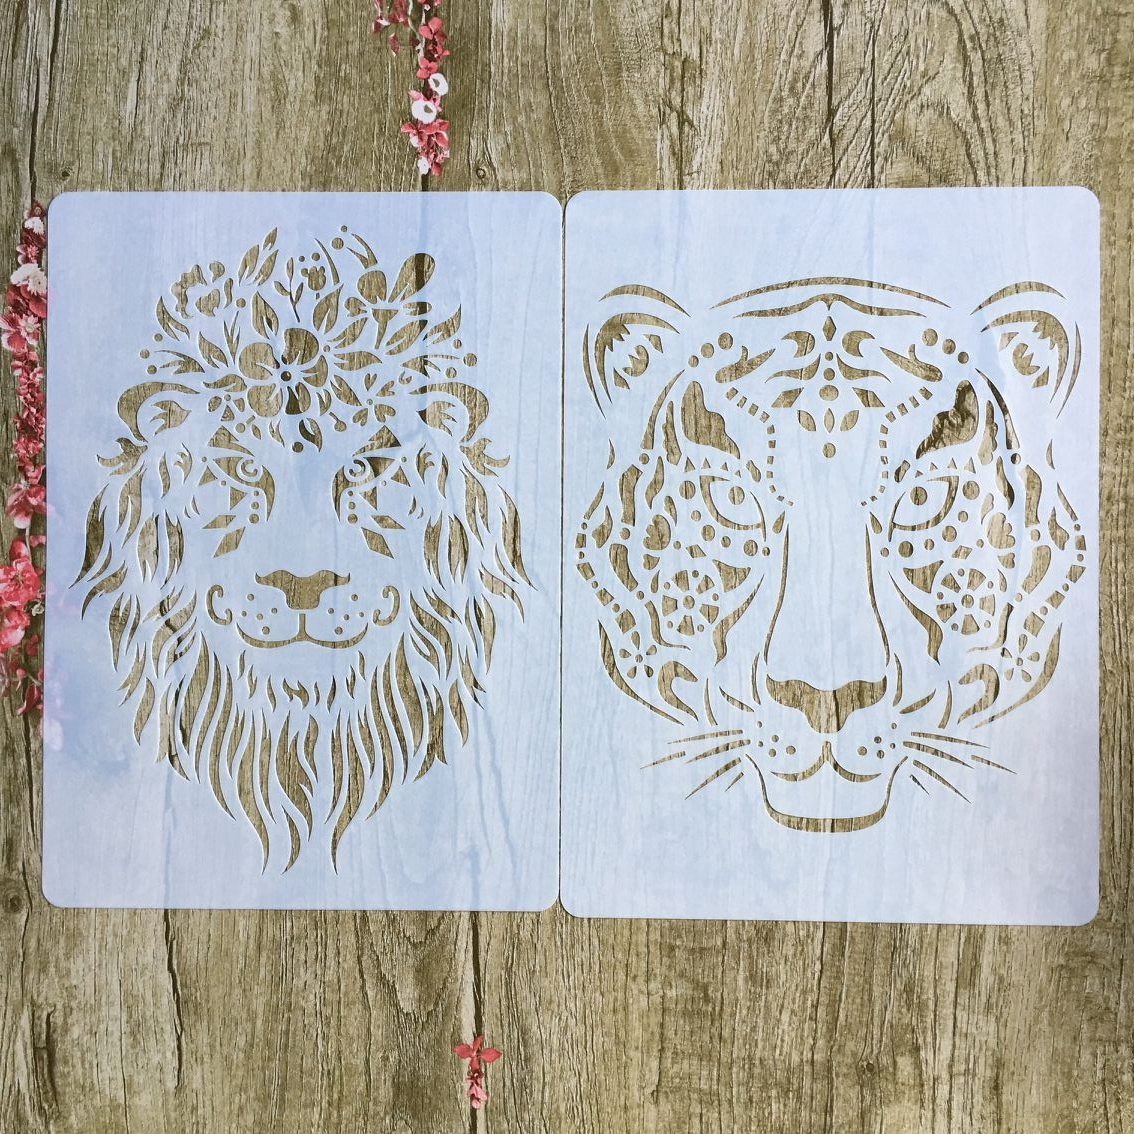 2 Pieces / Each Batch Of A4 Animal Tiger Lion DIY Craft Layered Stencil, Painting, Scrapbook, Embossing,  Album Paper Stencil